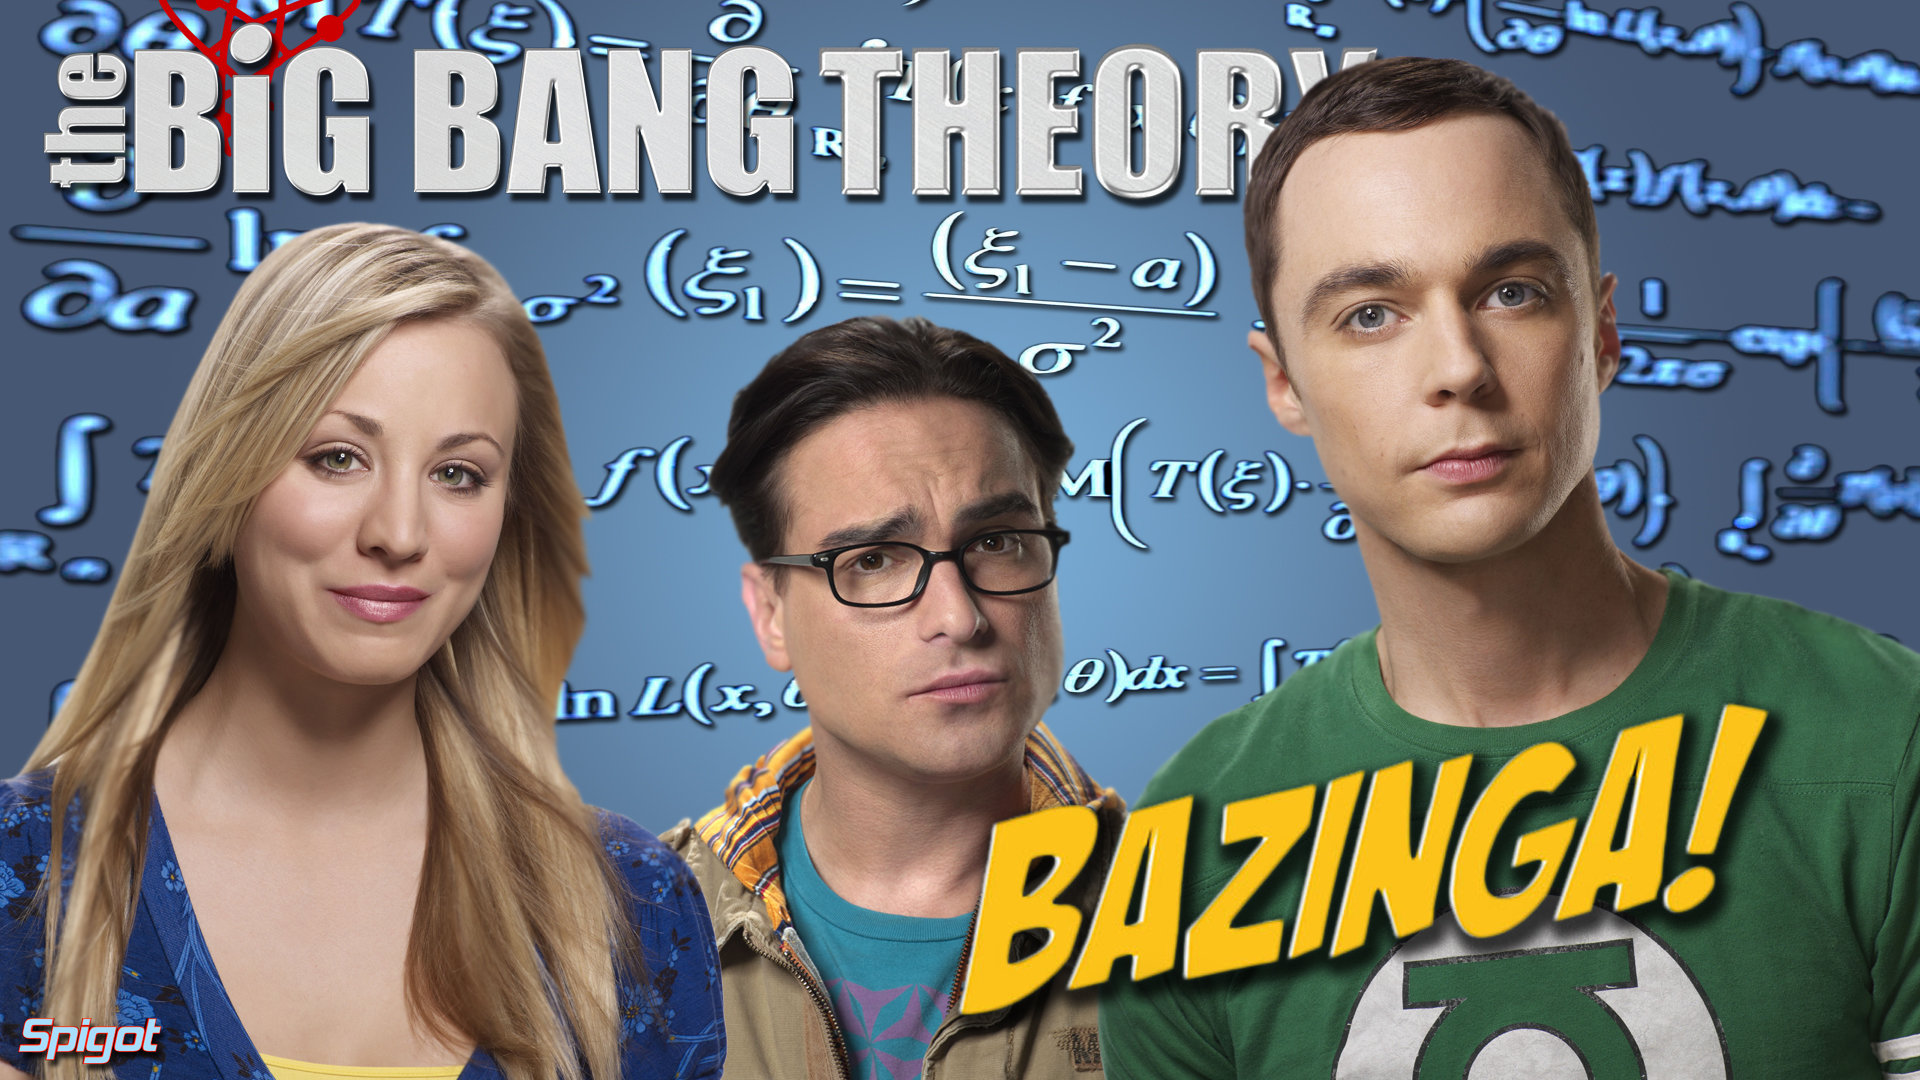 The Big Bang Theory Wallpapers Hd For Desktop Backgrounds